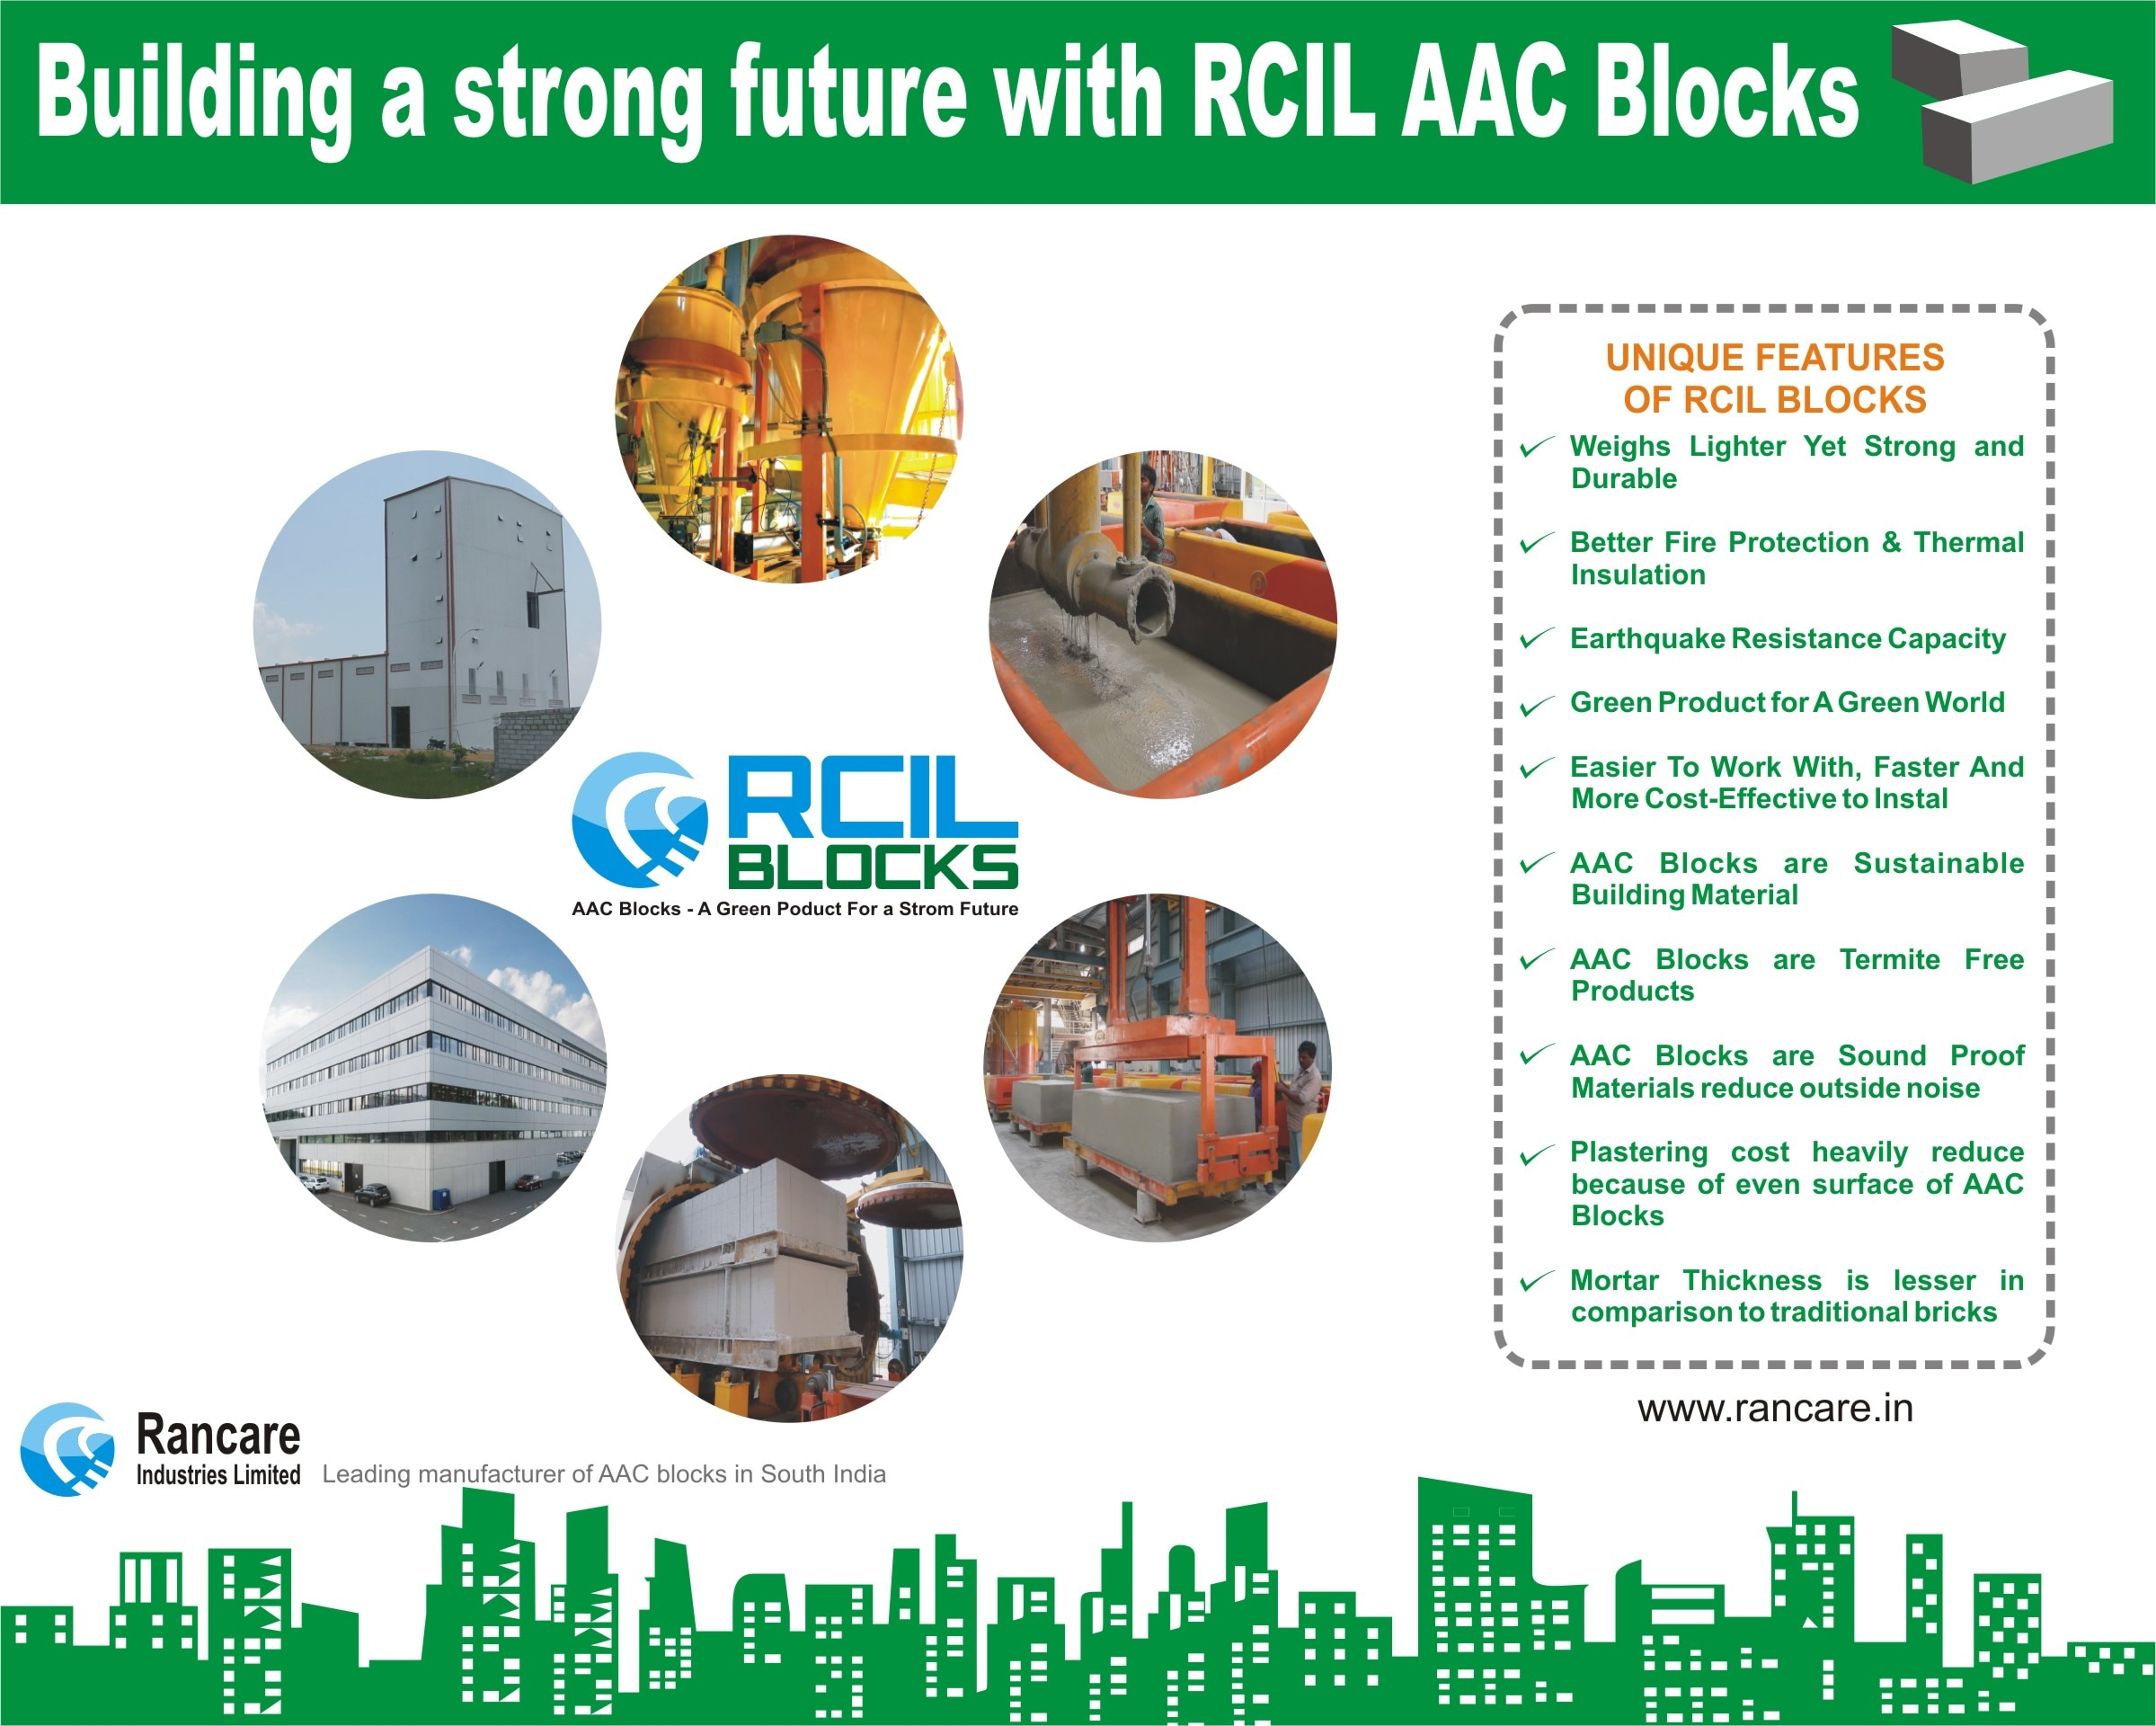 Rancare Industries Ltd